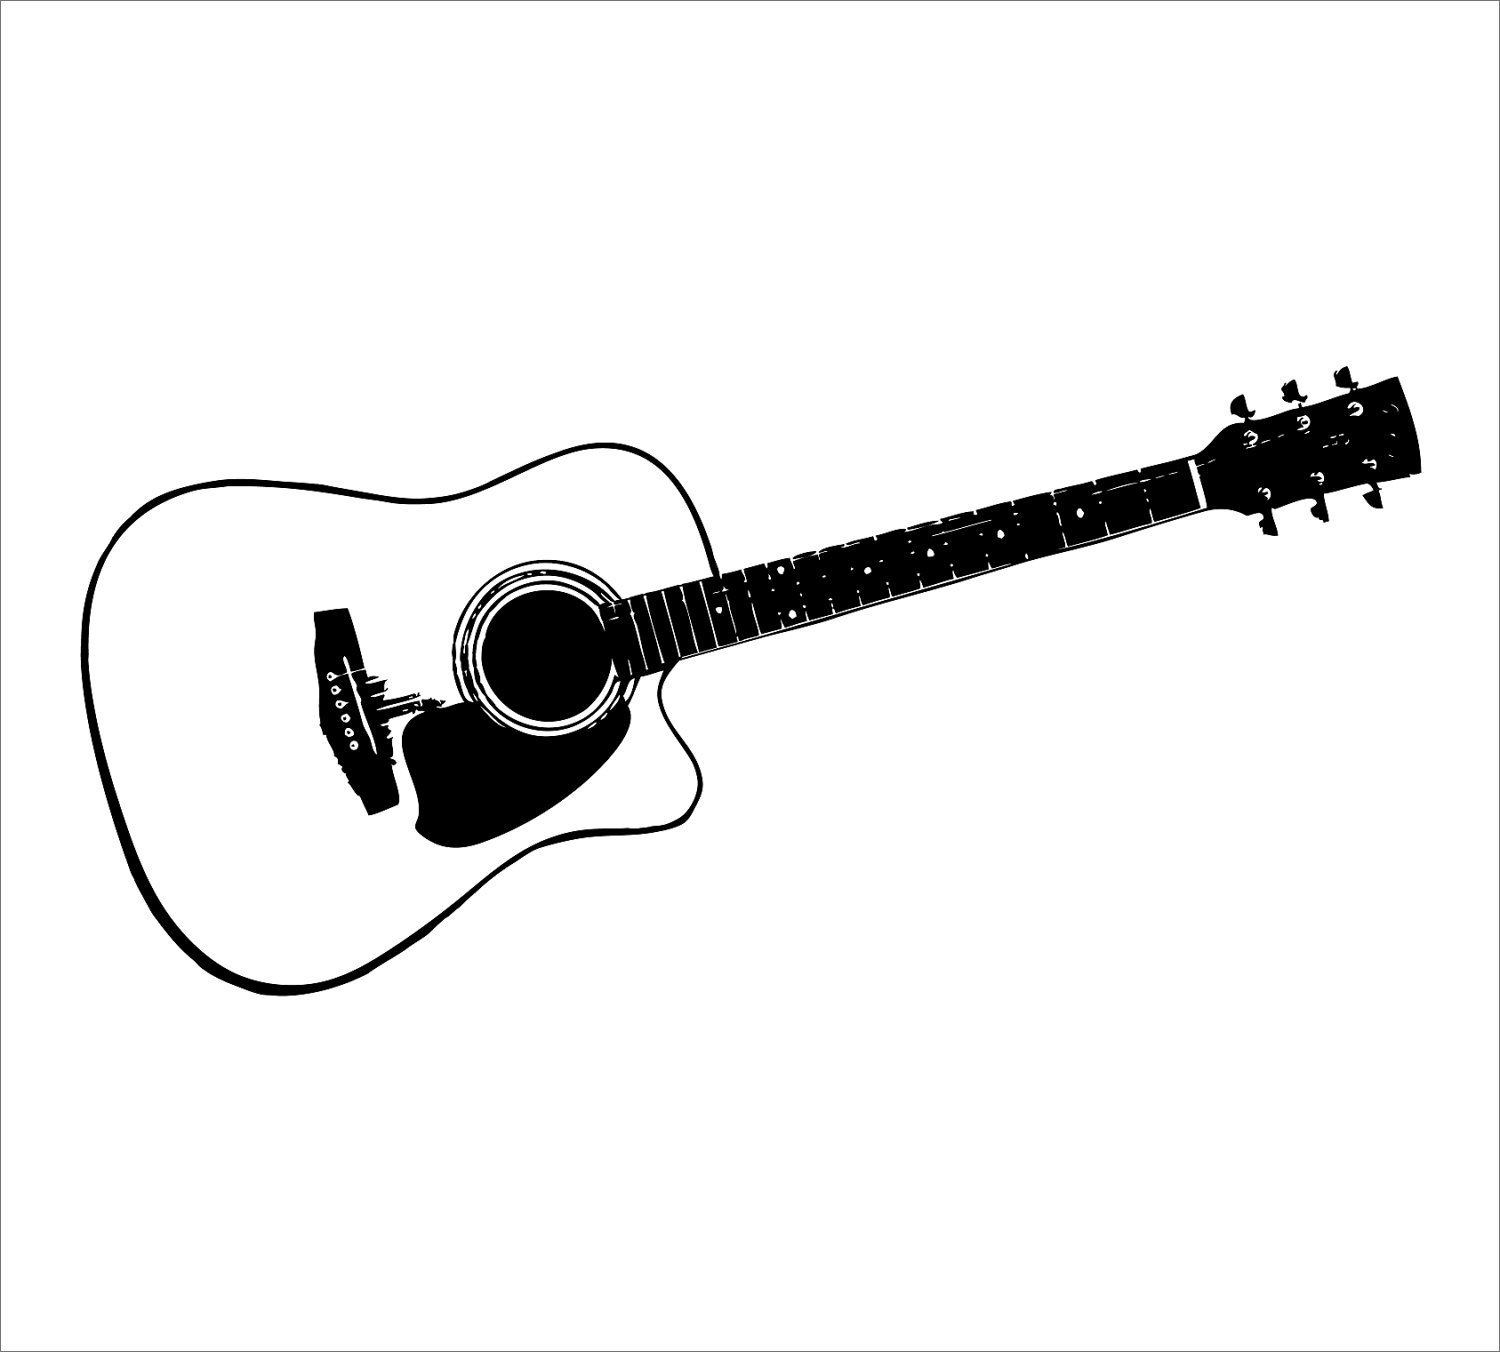 guitar silhouette vector at getdrawings com free for personal use rh getdrawings com victor guitars denver colorado vector guitar chords free